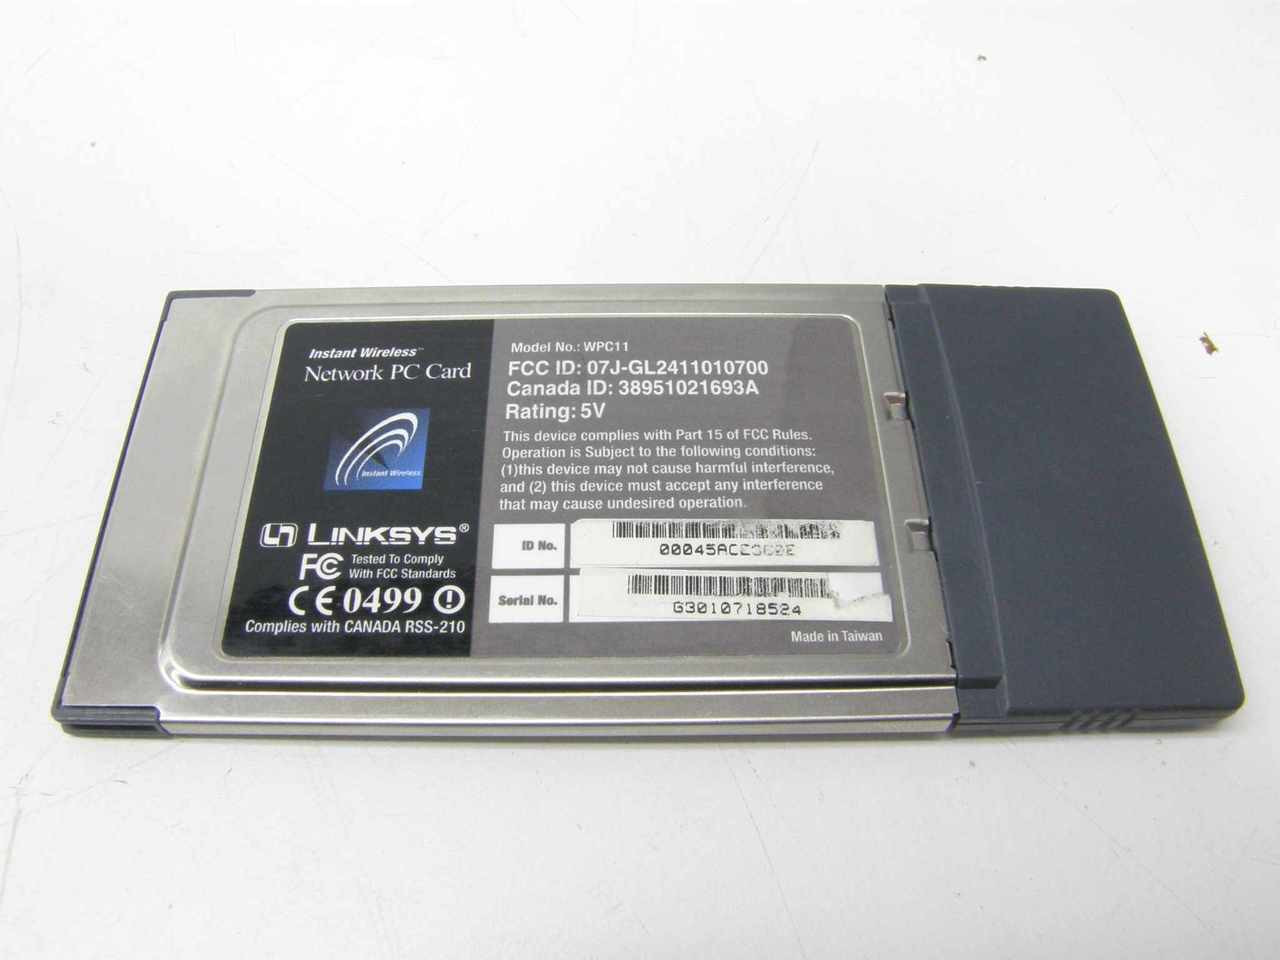 INSTANT WIRELESS NETWORK PC CARD WPC11 DRIVER WINDOWS XP